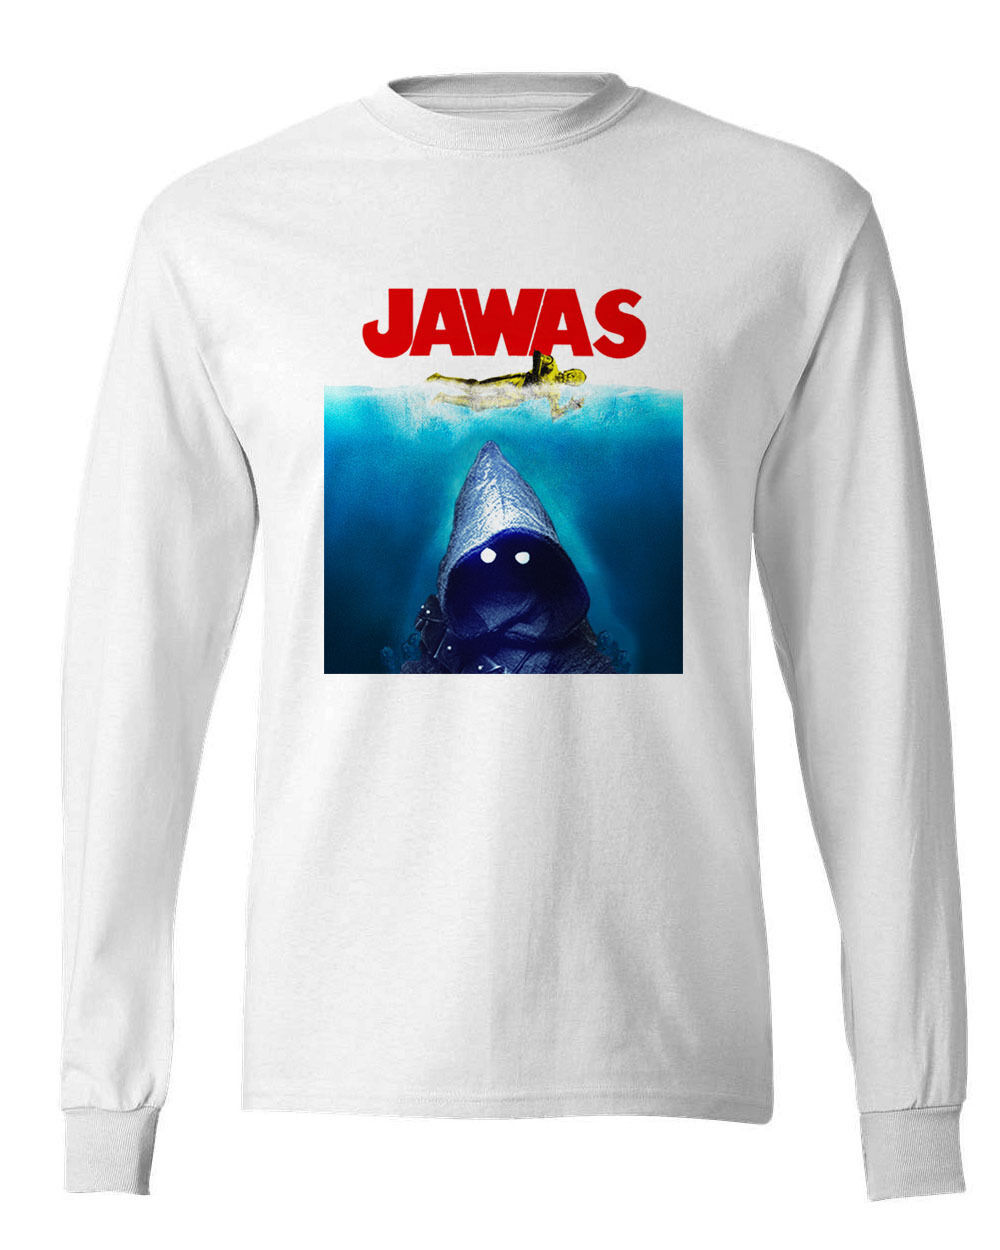 JAWAS Star Wars long sleeve T-shirt C3PO JAWS retro 70s parody100% cotton